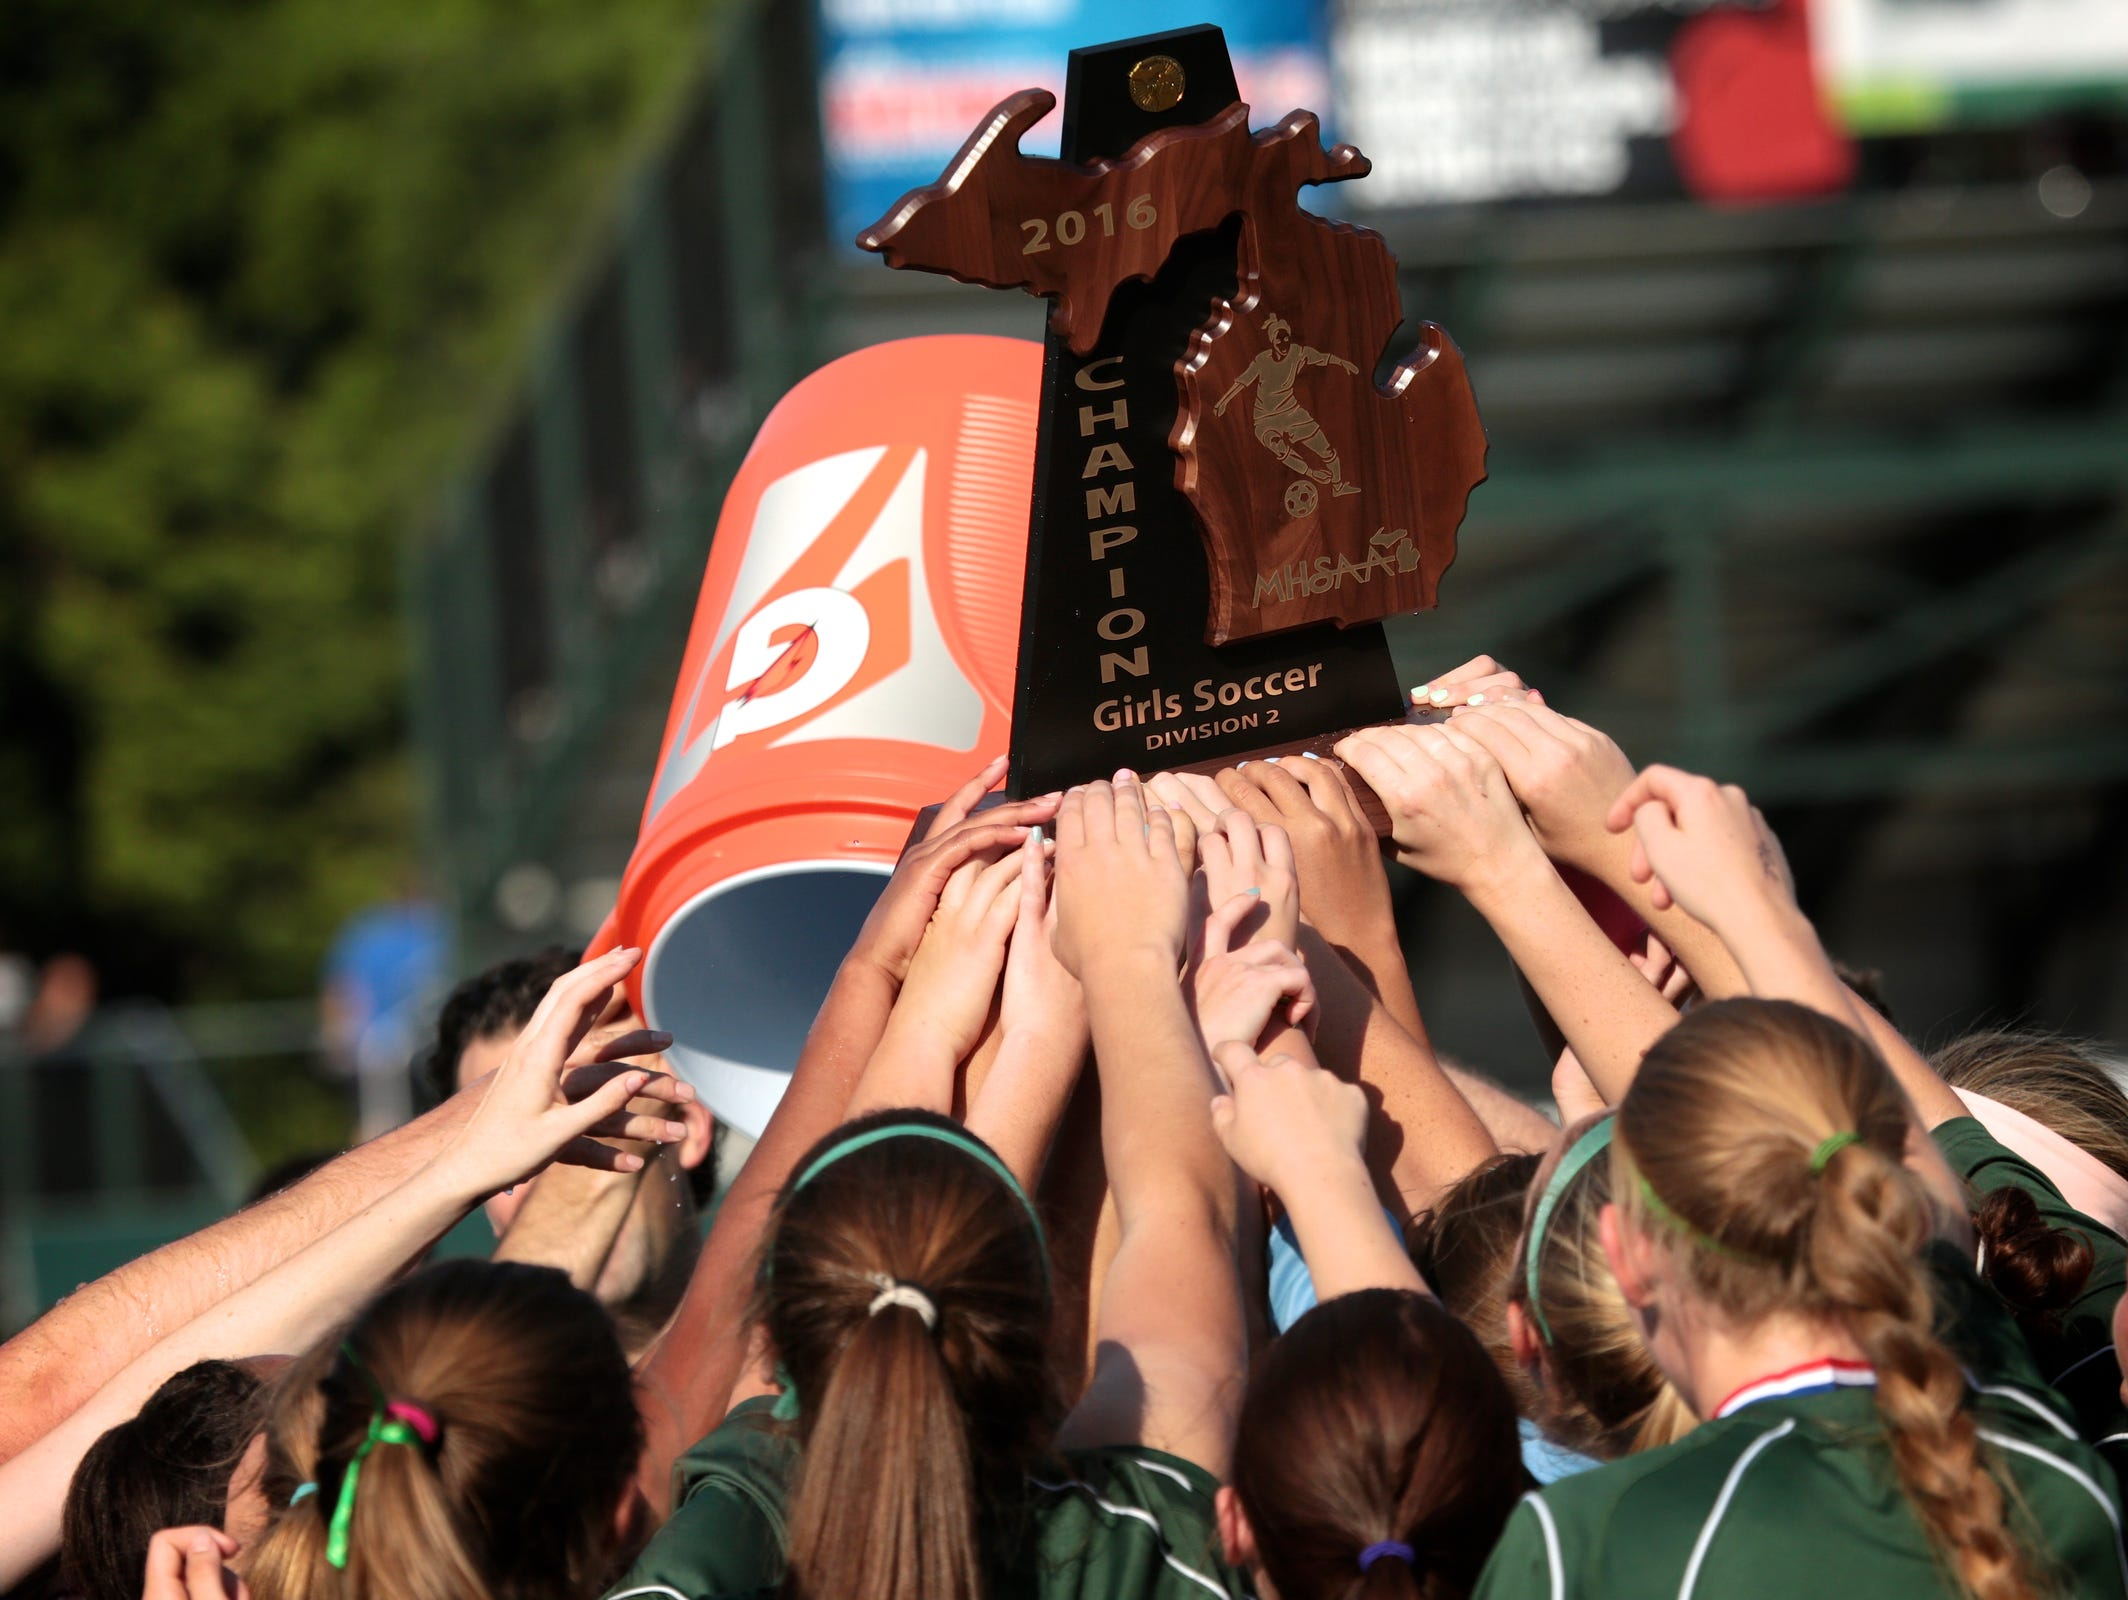 Notre Dame Prep players celebrate winning the Championship in the shootout against Forest Hills Northern on Saturday, June 18, 2016 at the MHSAA Division 2 soccer championship game at Michigan State University in East Lansing.